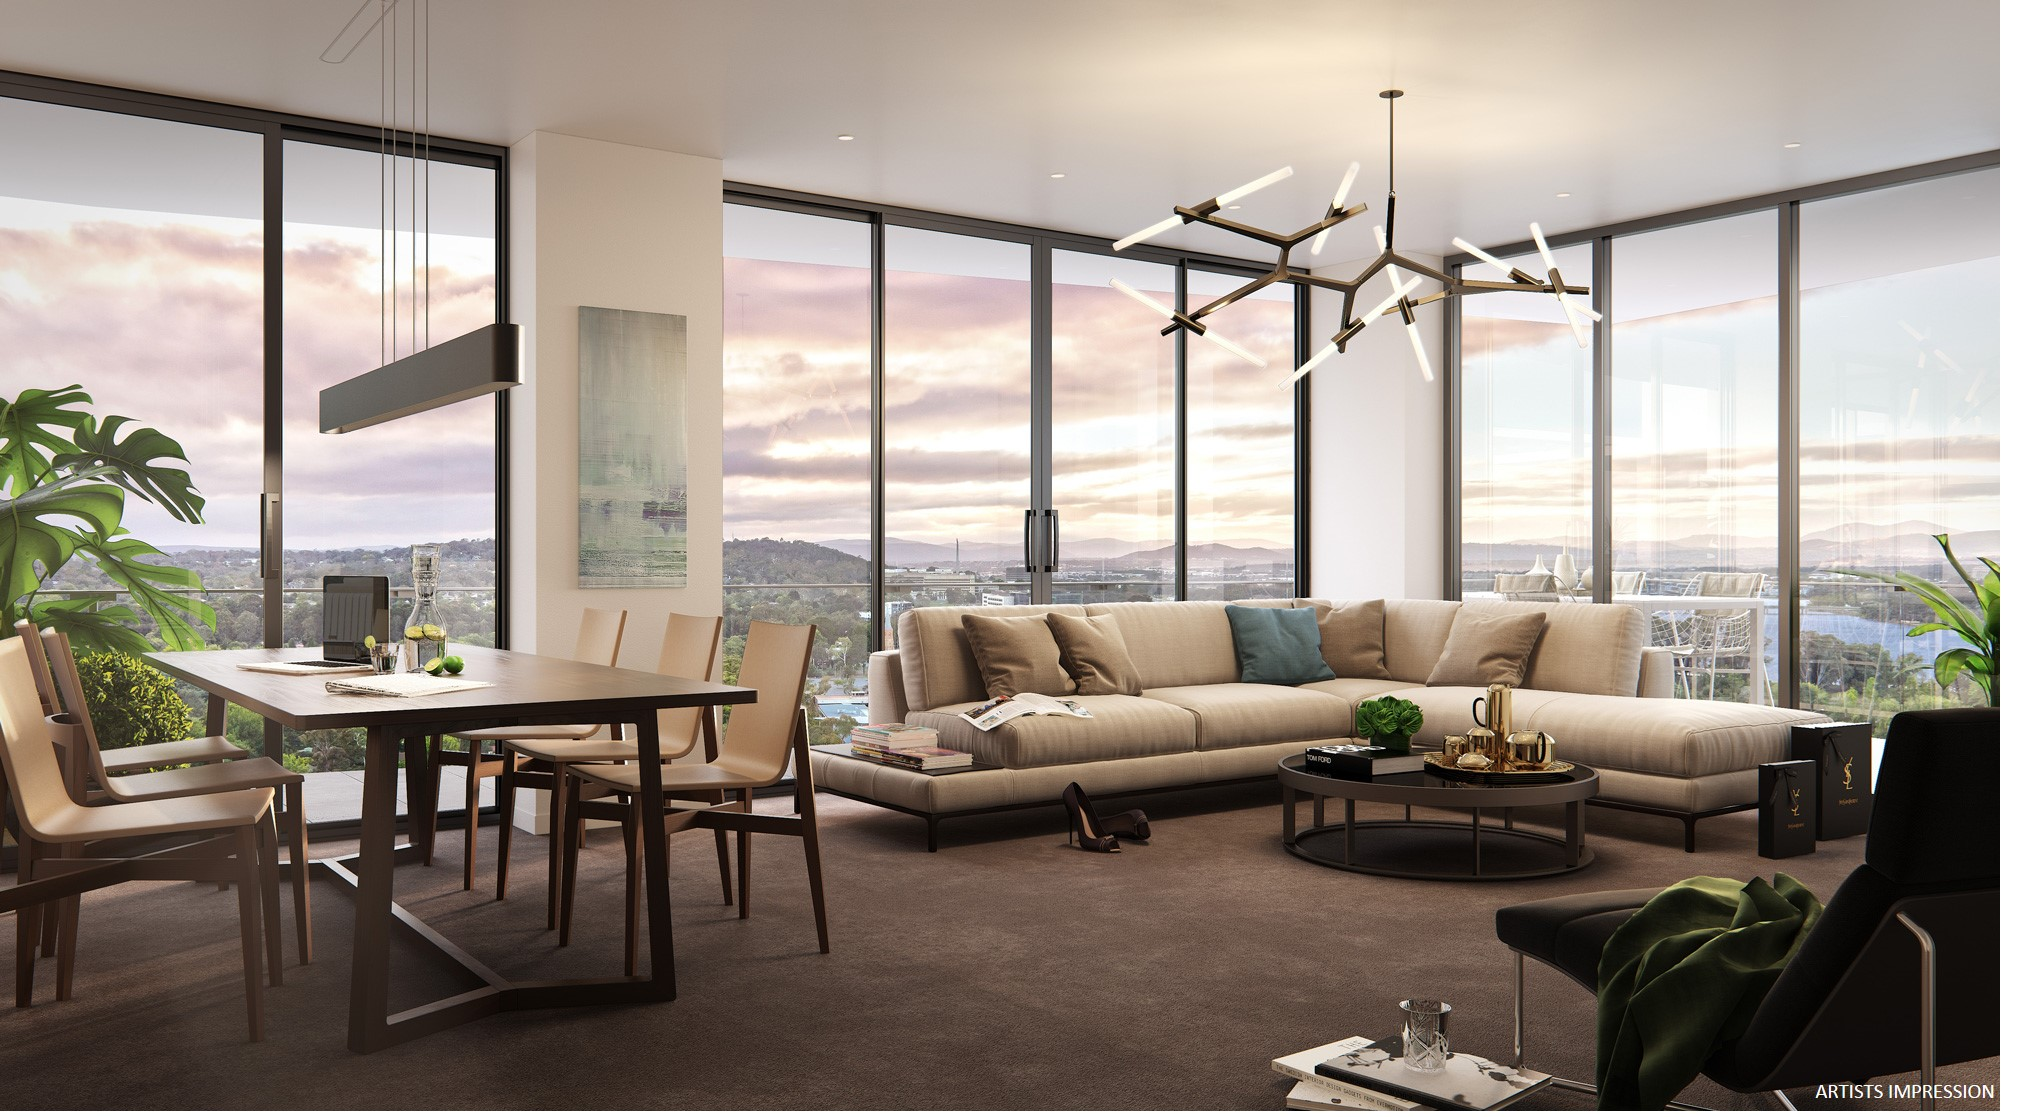 2 Bedroom Accommodation Canberra Highgate 2 Bedroom Apartment Canberra Act 2601 Apartment For